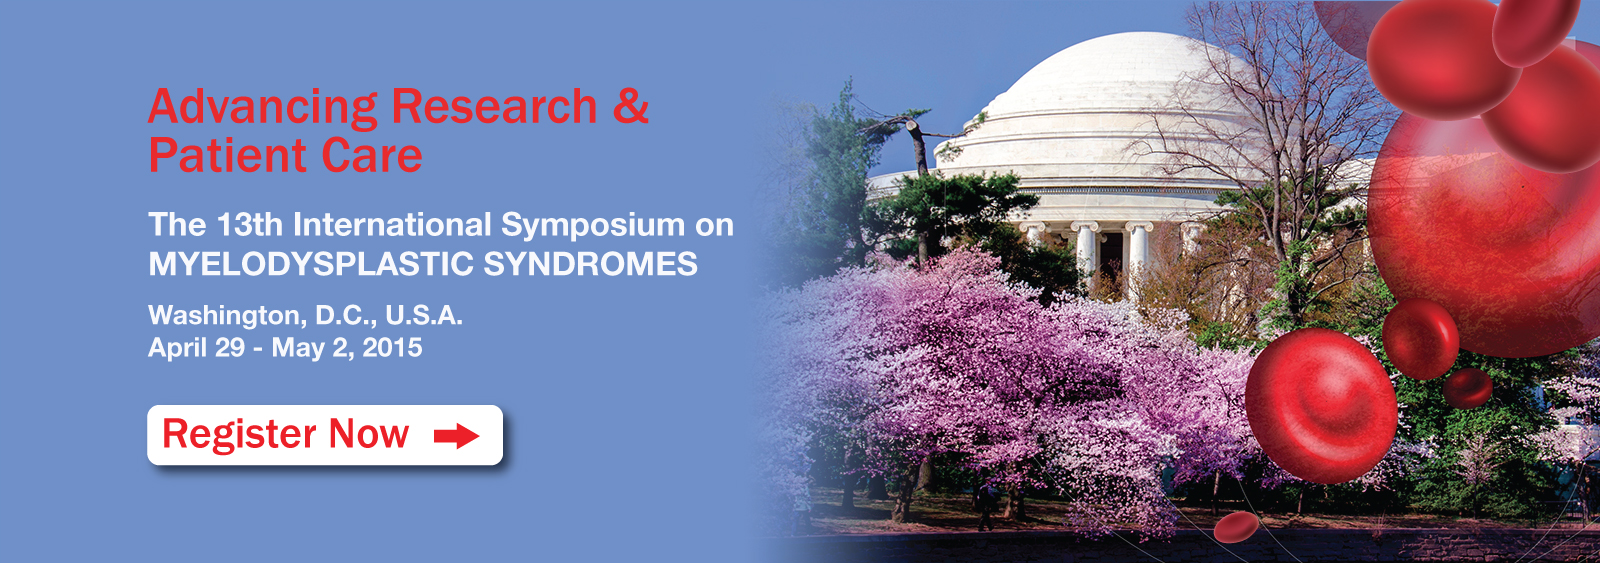 Advancing_Patient_Care_Symposium